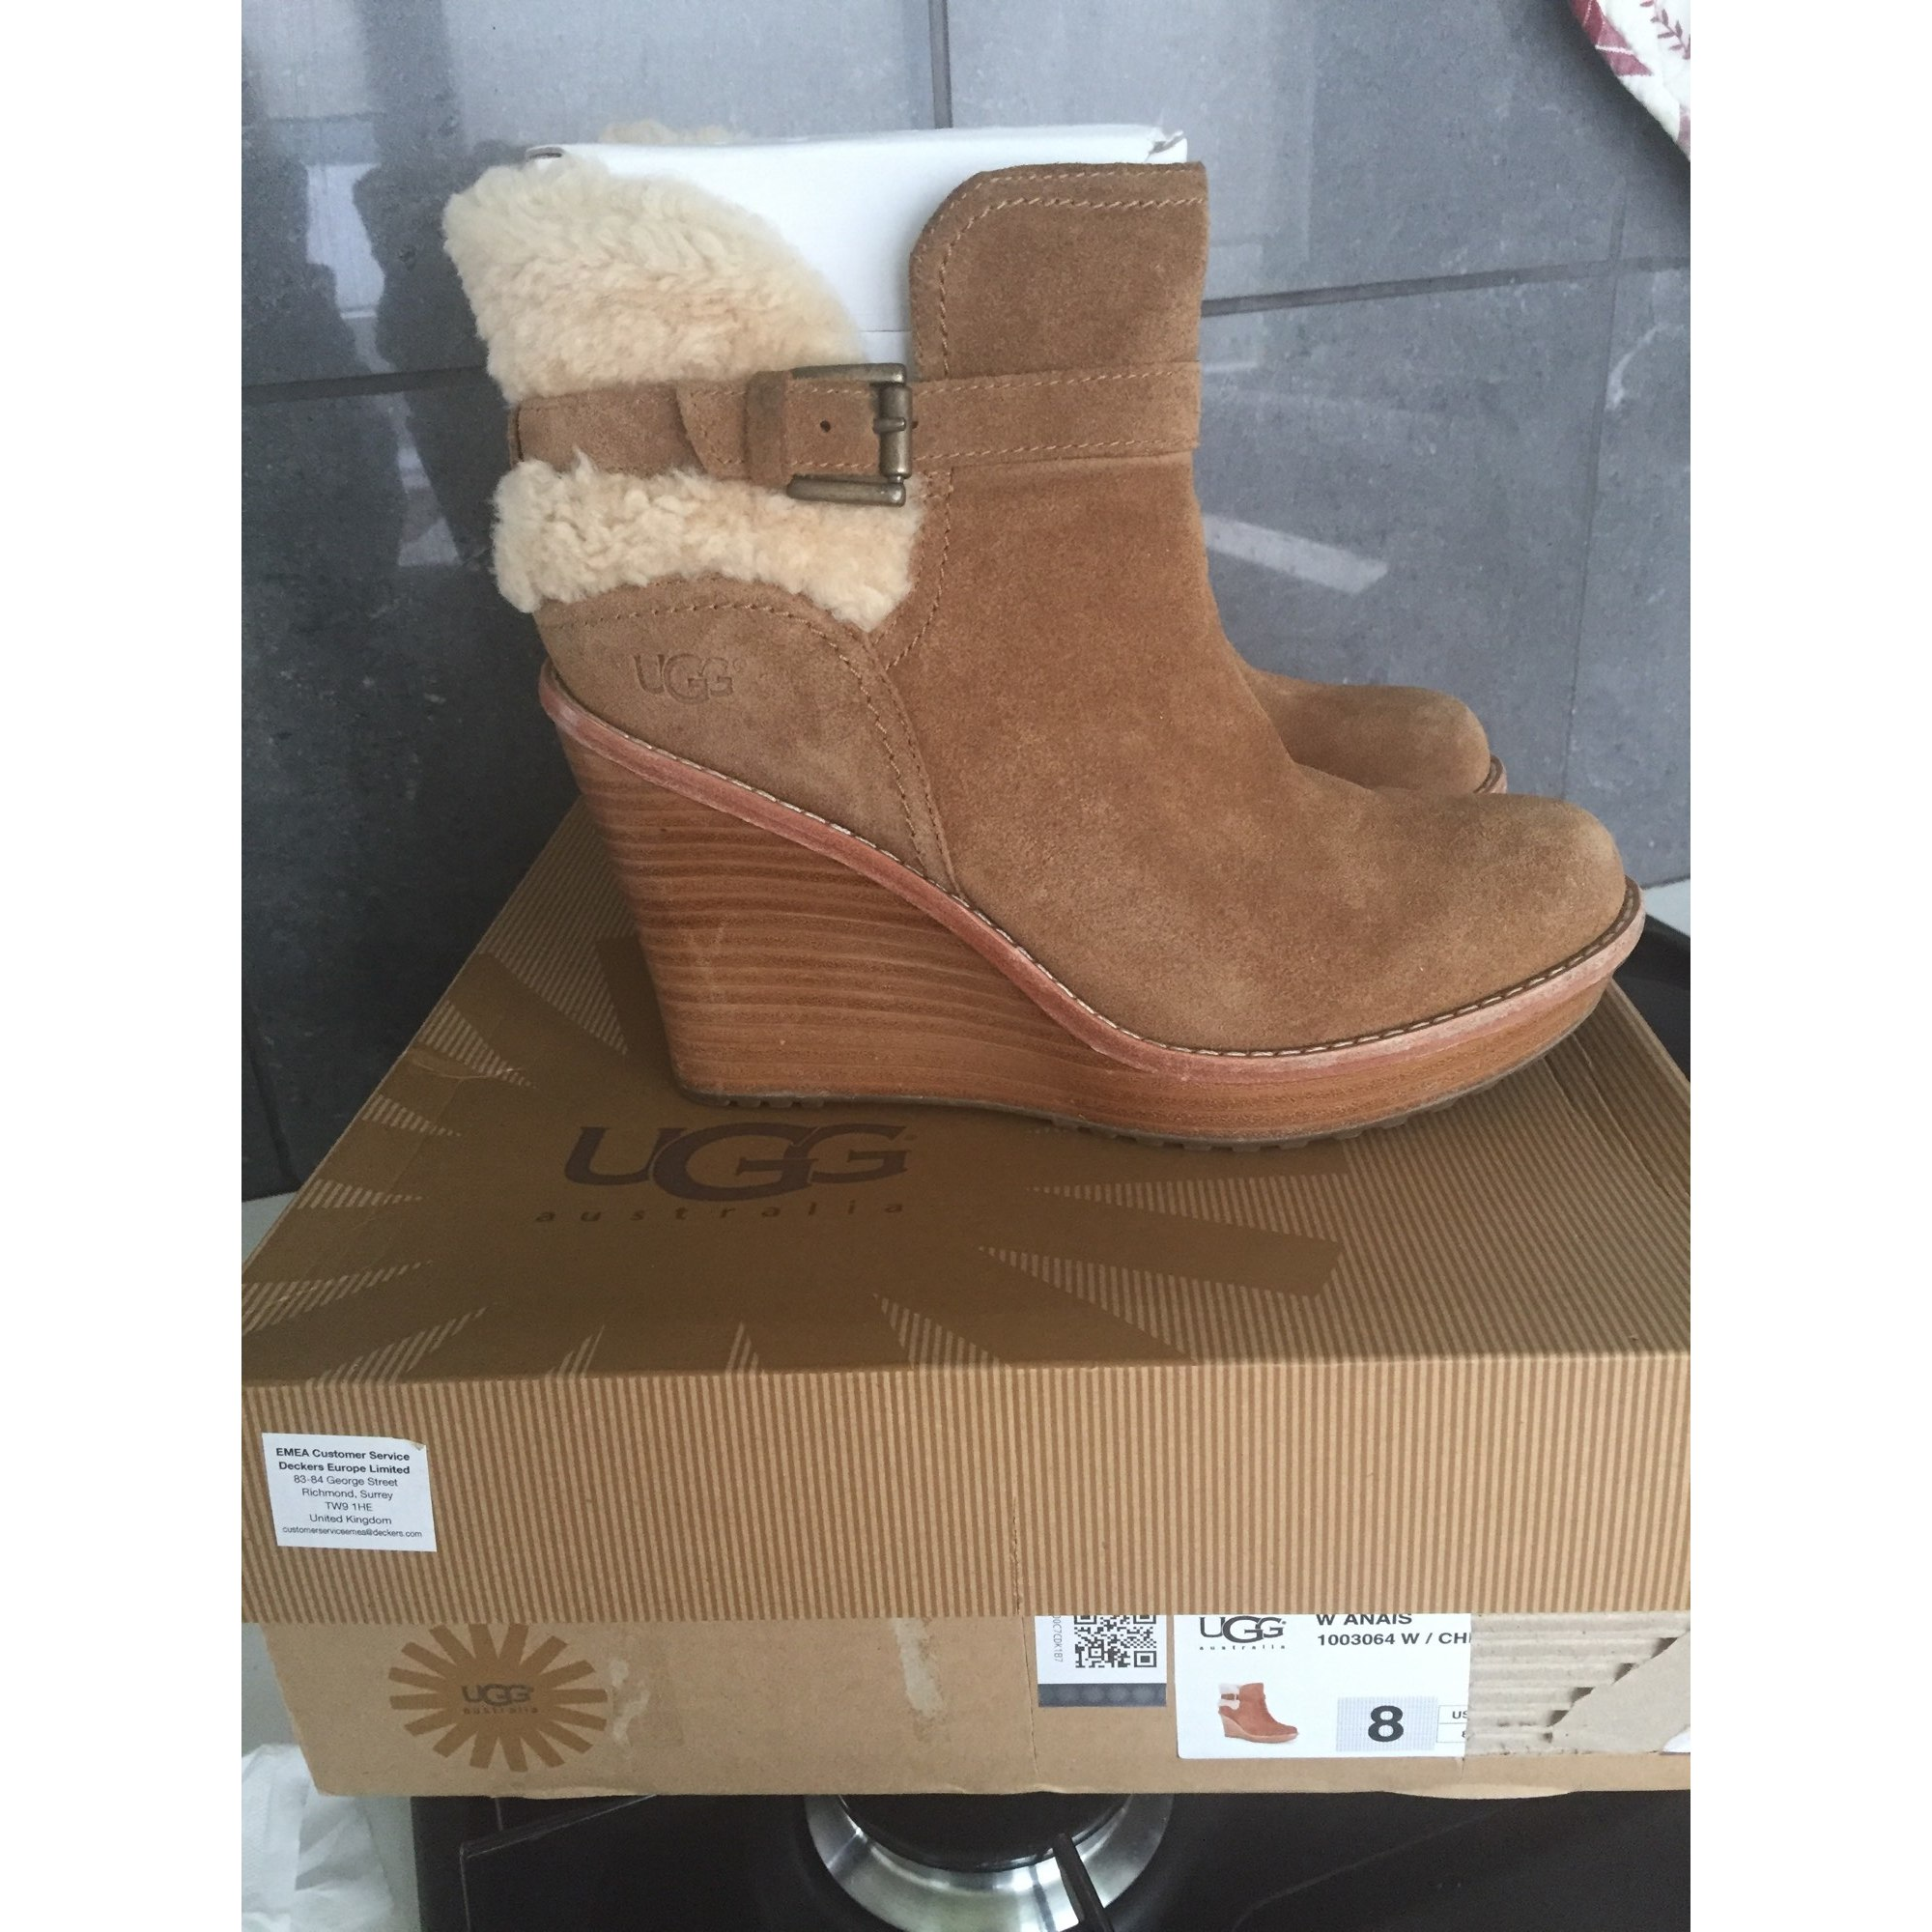 boots compensees ugg